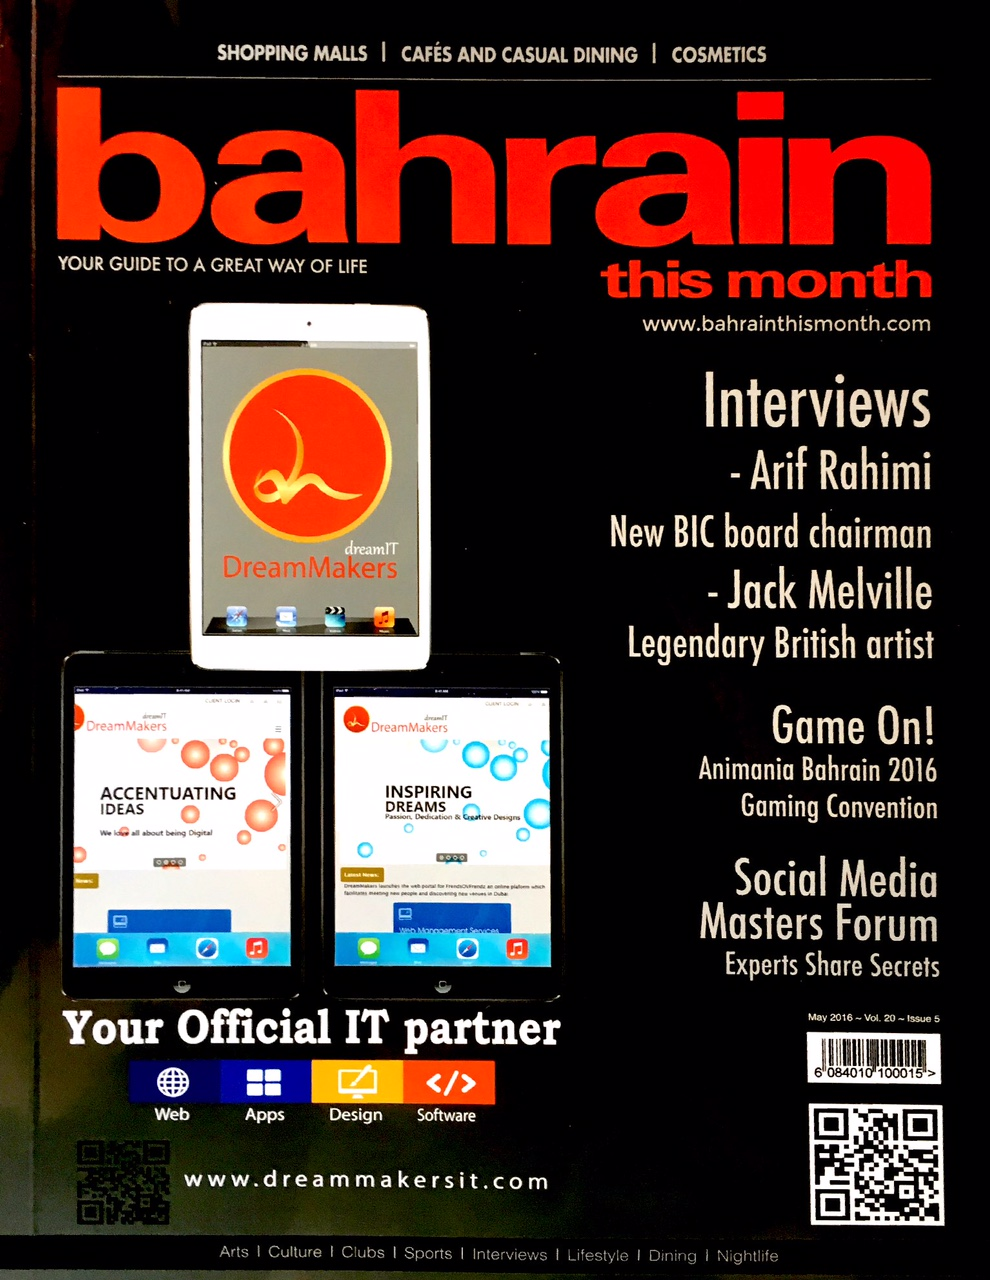 The Magazine Bahrain